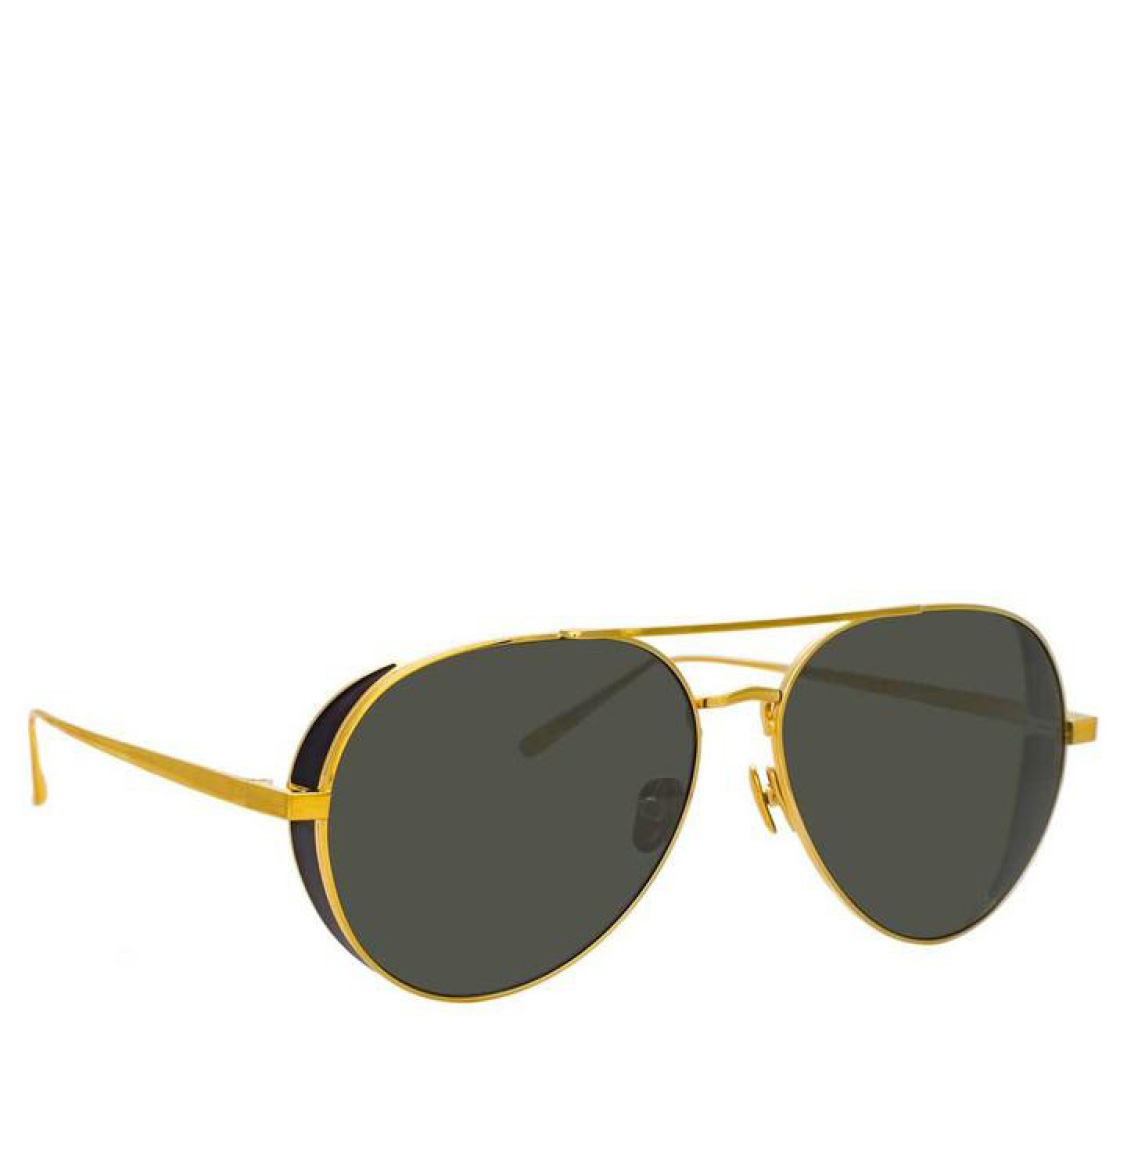 Linda Farrow 792 C1 Aviator Yellow Gold-Plated 57 Γυαλιά Ηλίου